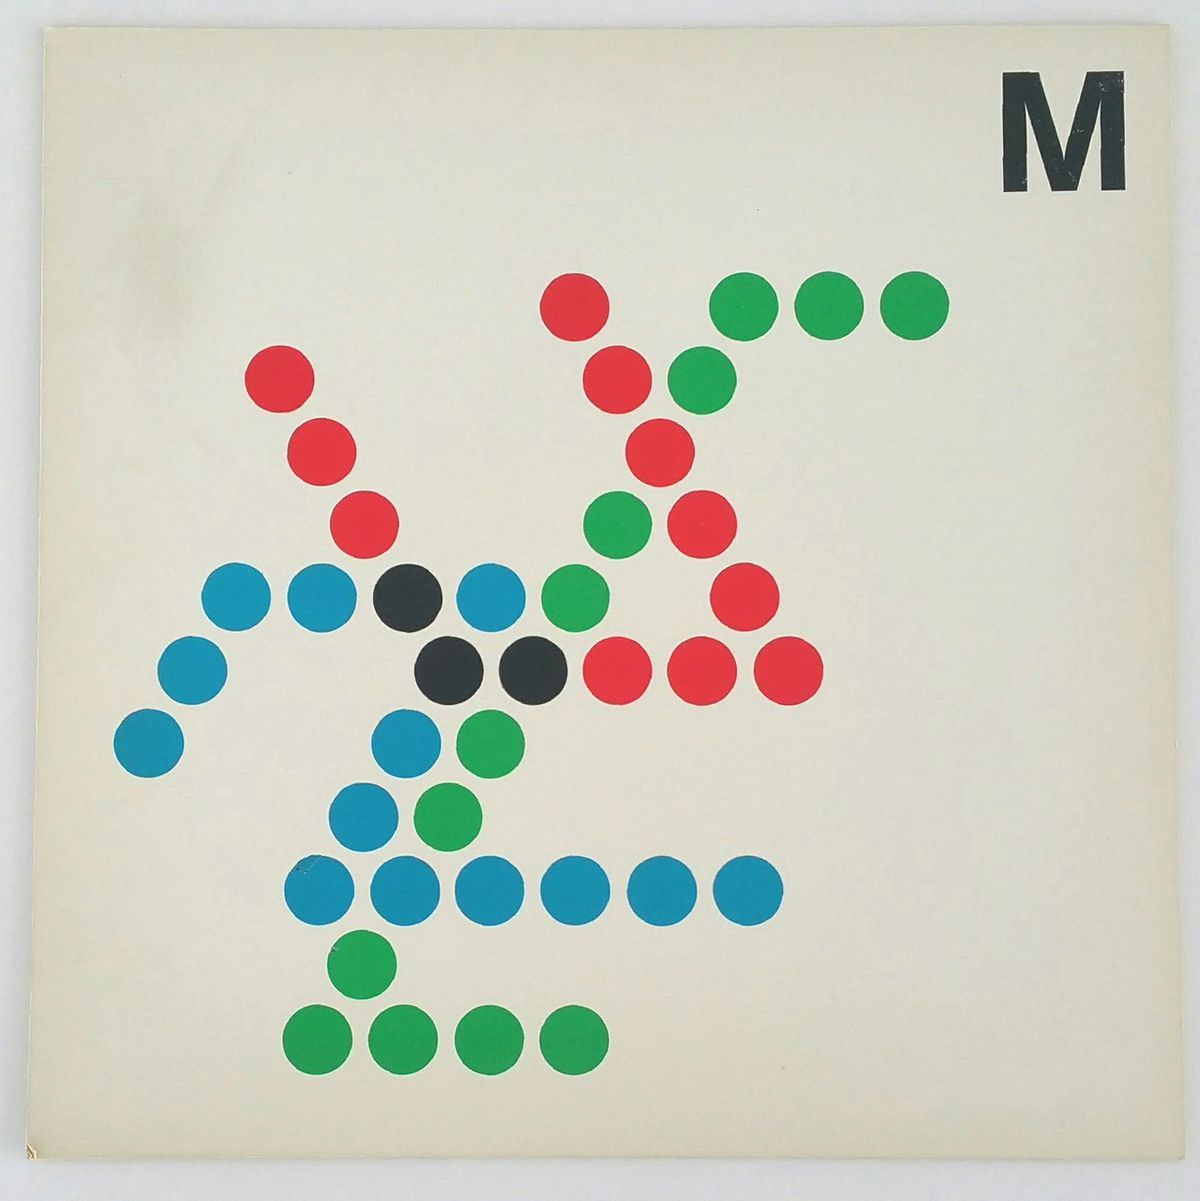 D.C. Metro map with dots